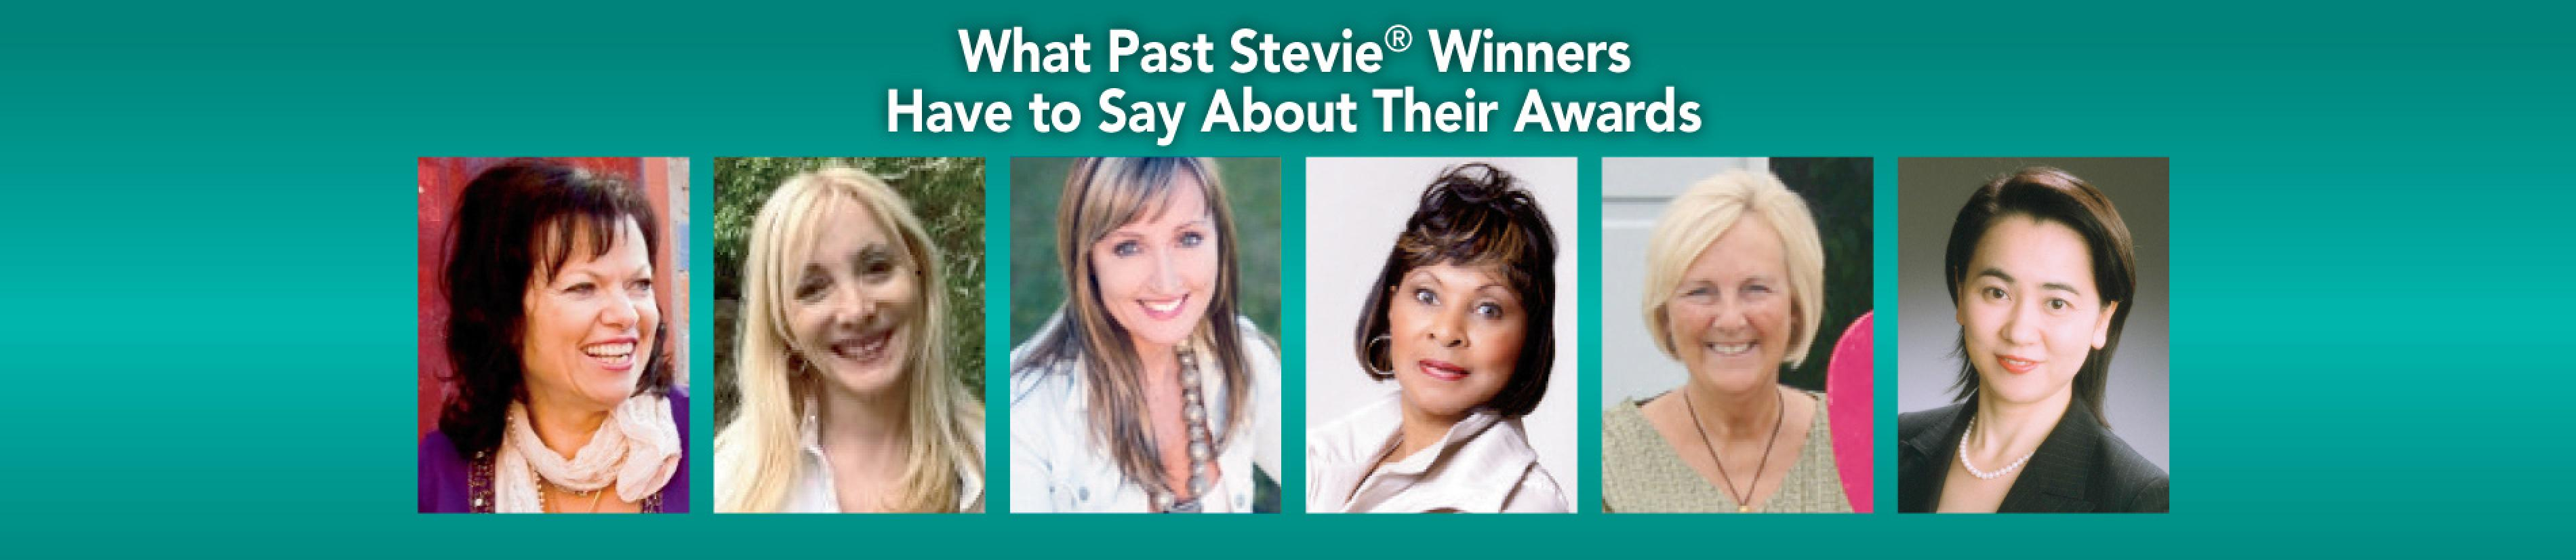 What Past Stevie Winners Say About Their Awards